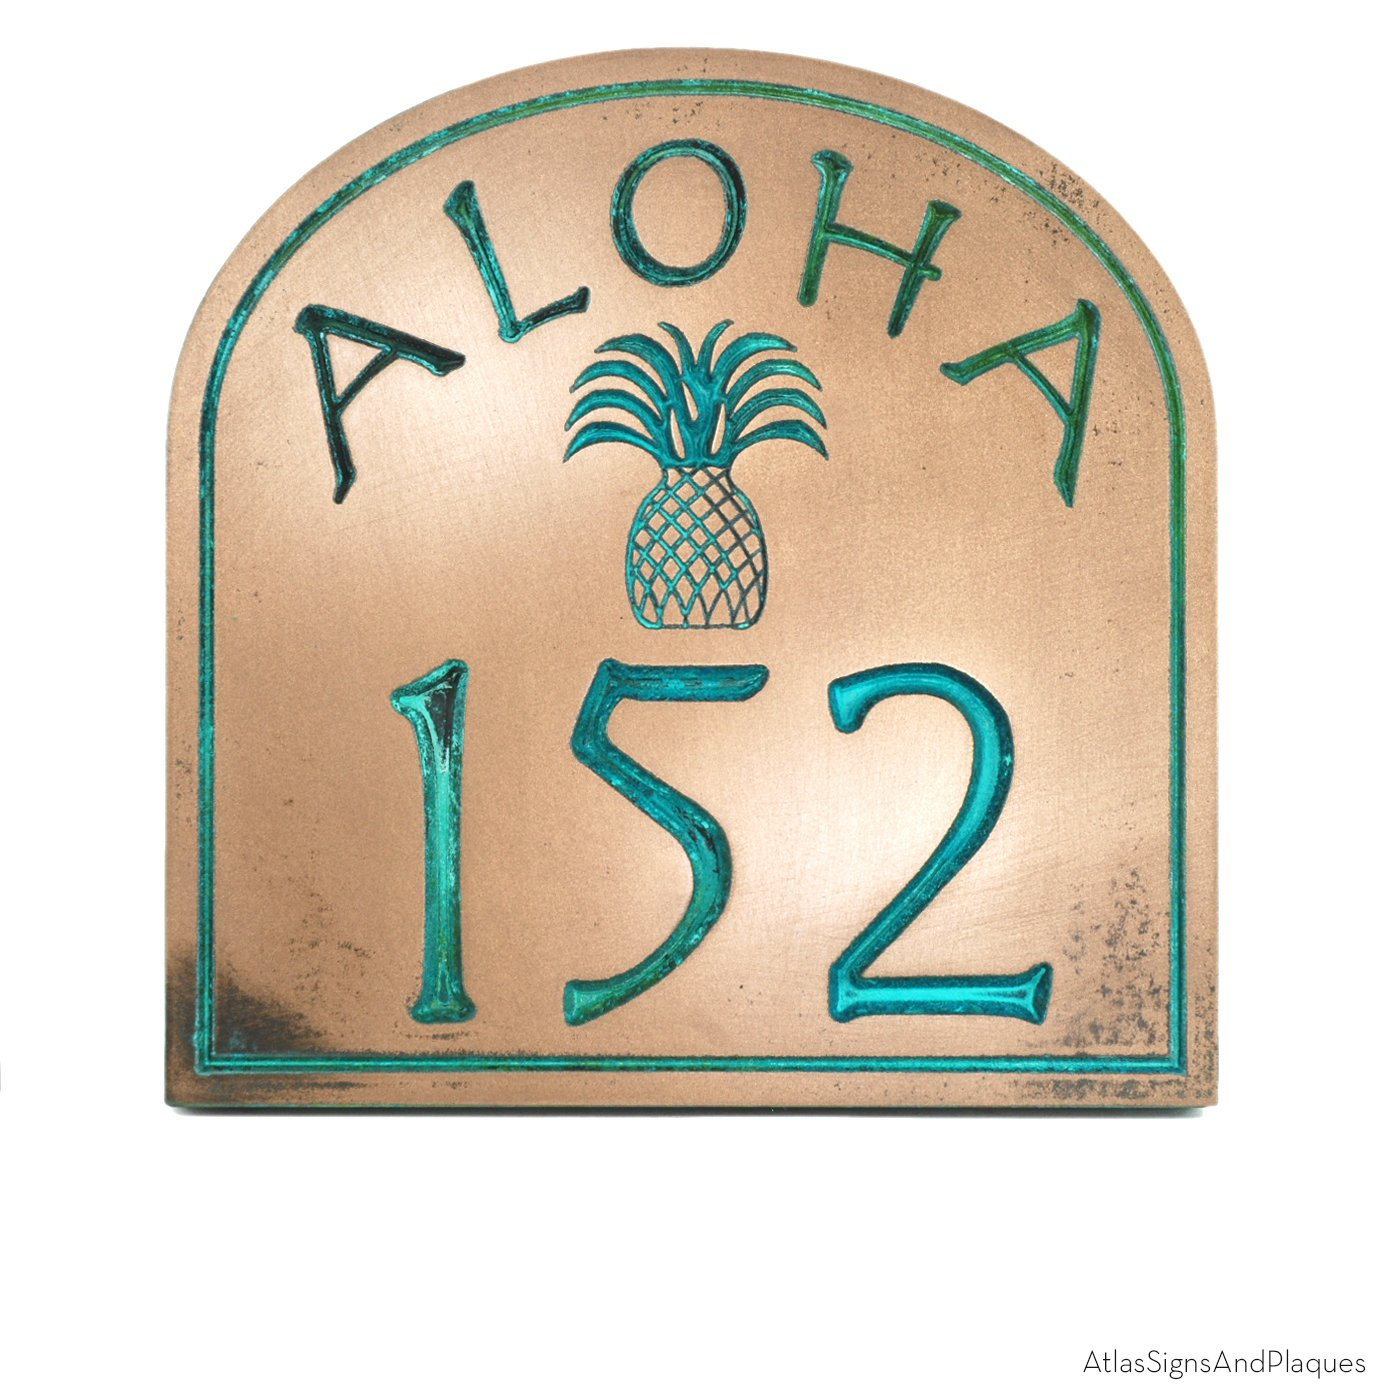 Hospitality Aloha Home Nubmer Sign 12x9.5 - Pineapple Welcome Sign - by Atlas Signs and Plaques - USA Made - Recessed Bronze Verdi Coated by Atlas Signs and Plaques